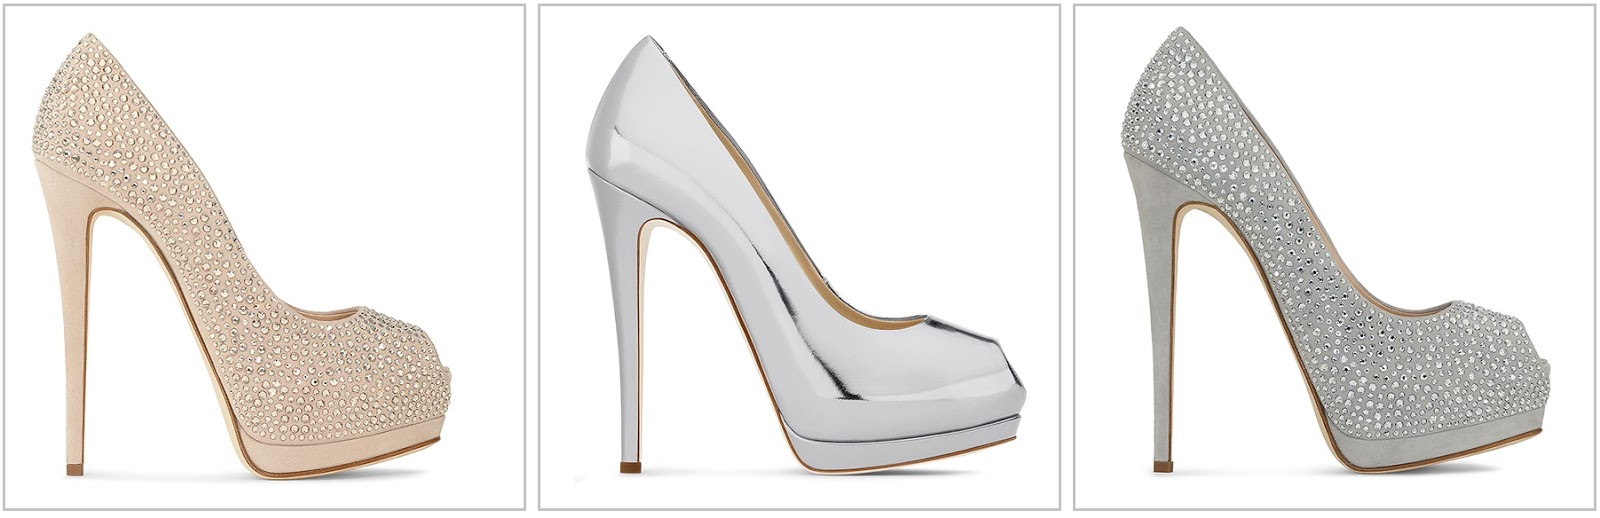 All Imagery Is Sourced From Giuseppe Zanotti